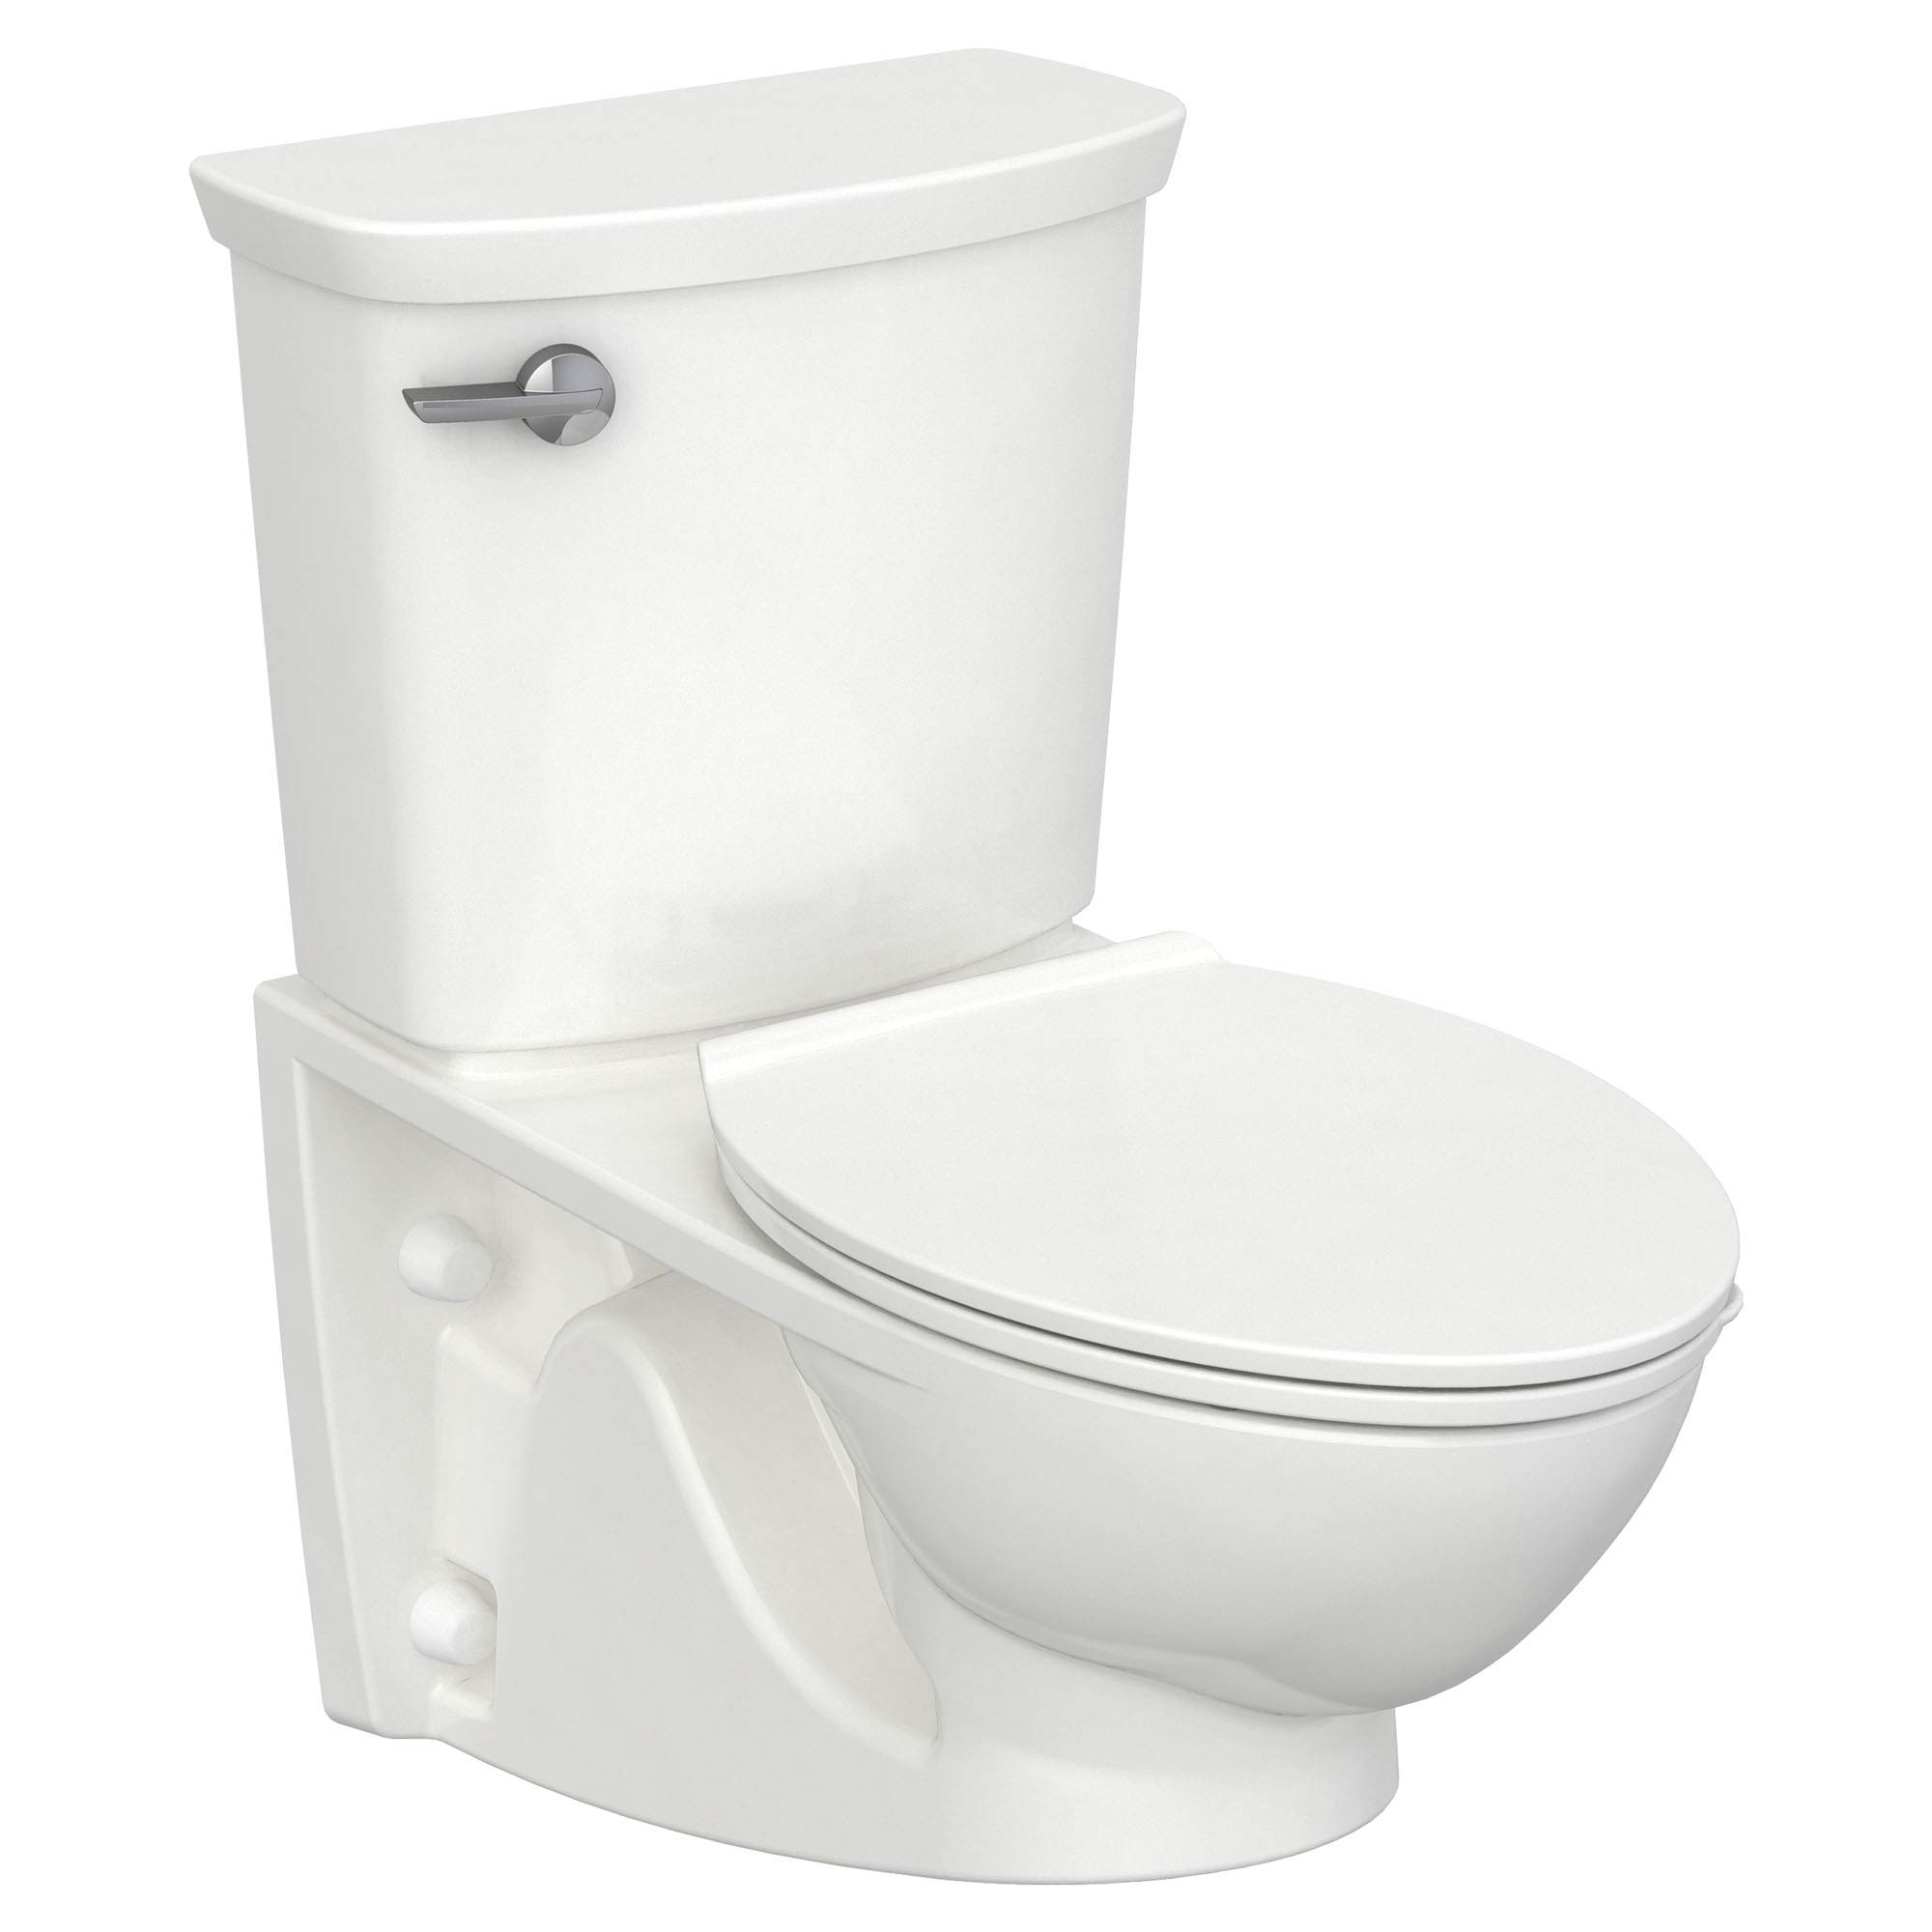 American Standard 2882107.020 Glenwall VorMax Wall-Hung Toilet with Left Hand Trip Lever, White